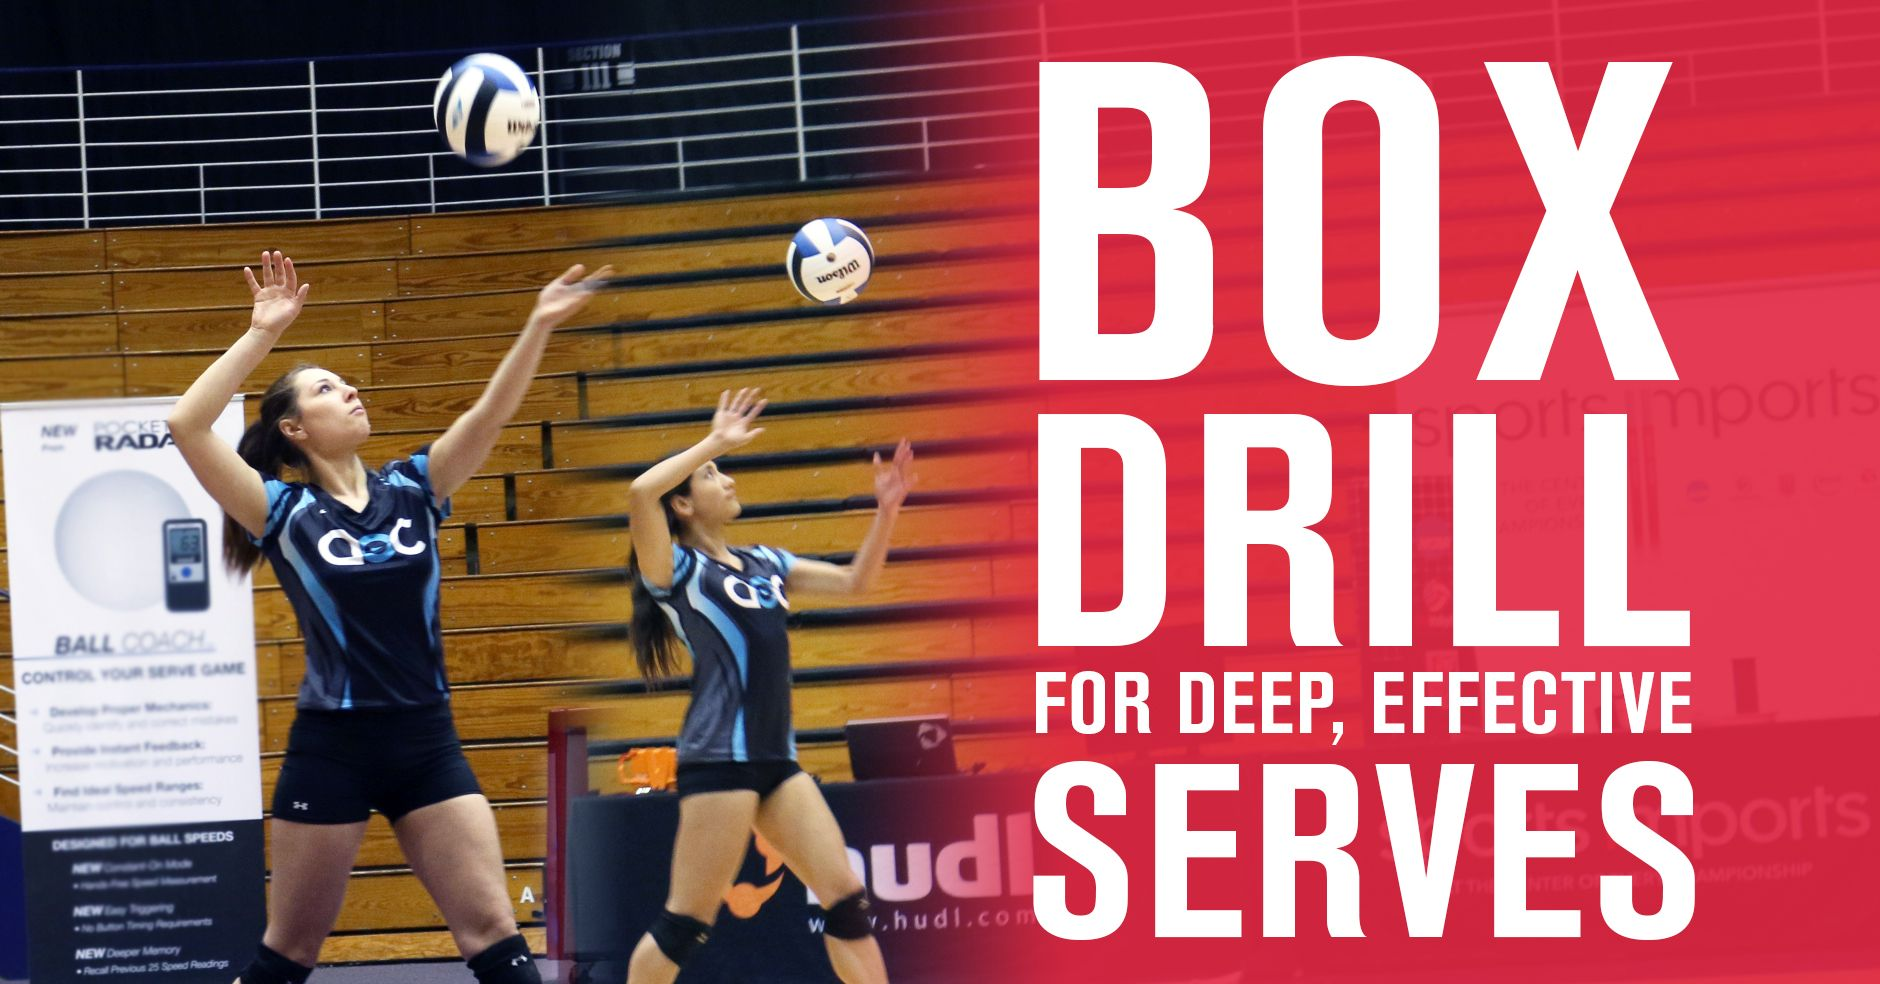 Box Drill For Deep Effective Serves Coaching Volleyball Volleyball Serving Drills Volleyball Practice